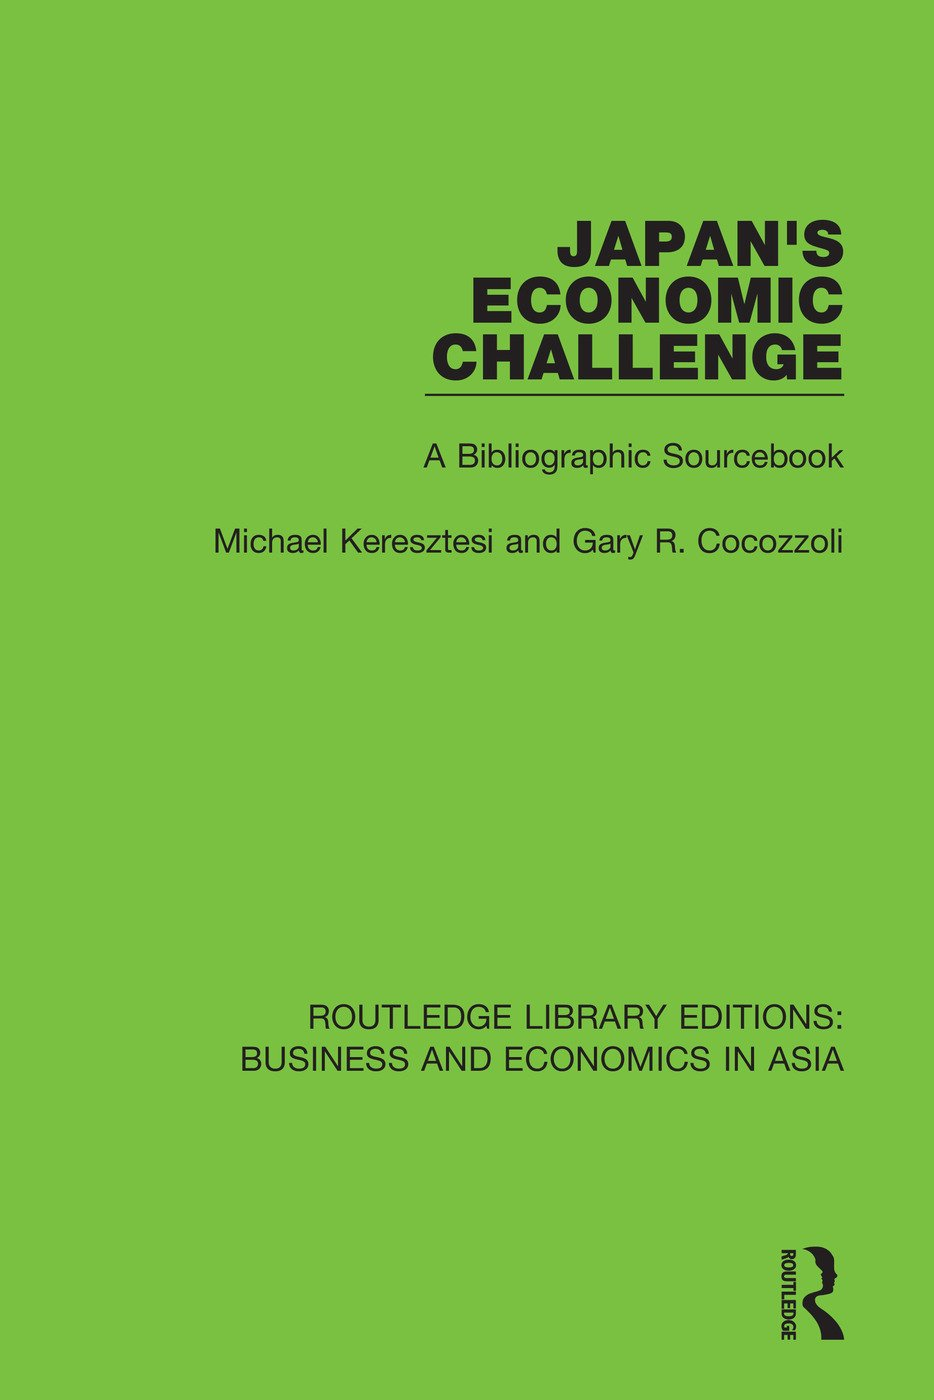 Japan's Economic Challenge: A Bibliographic Sourcebook book cover